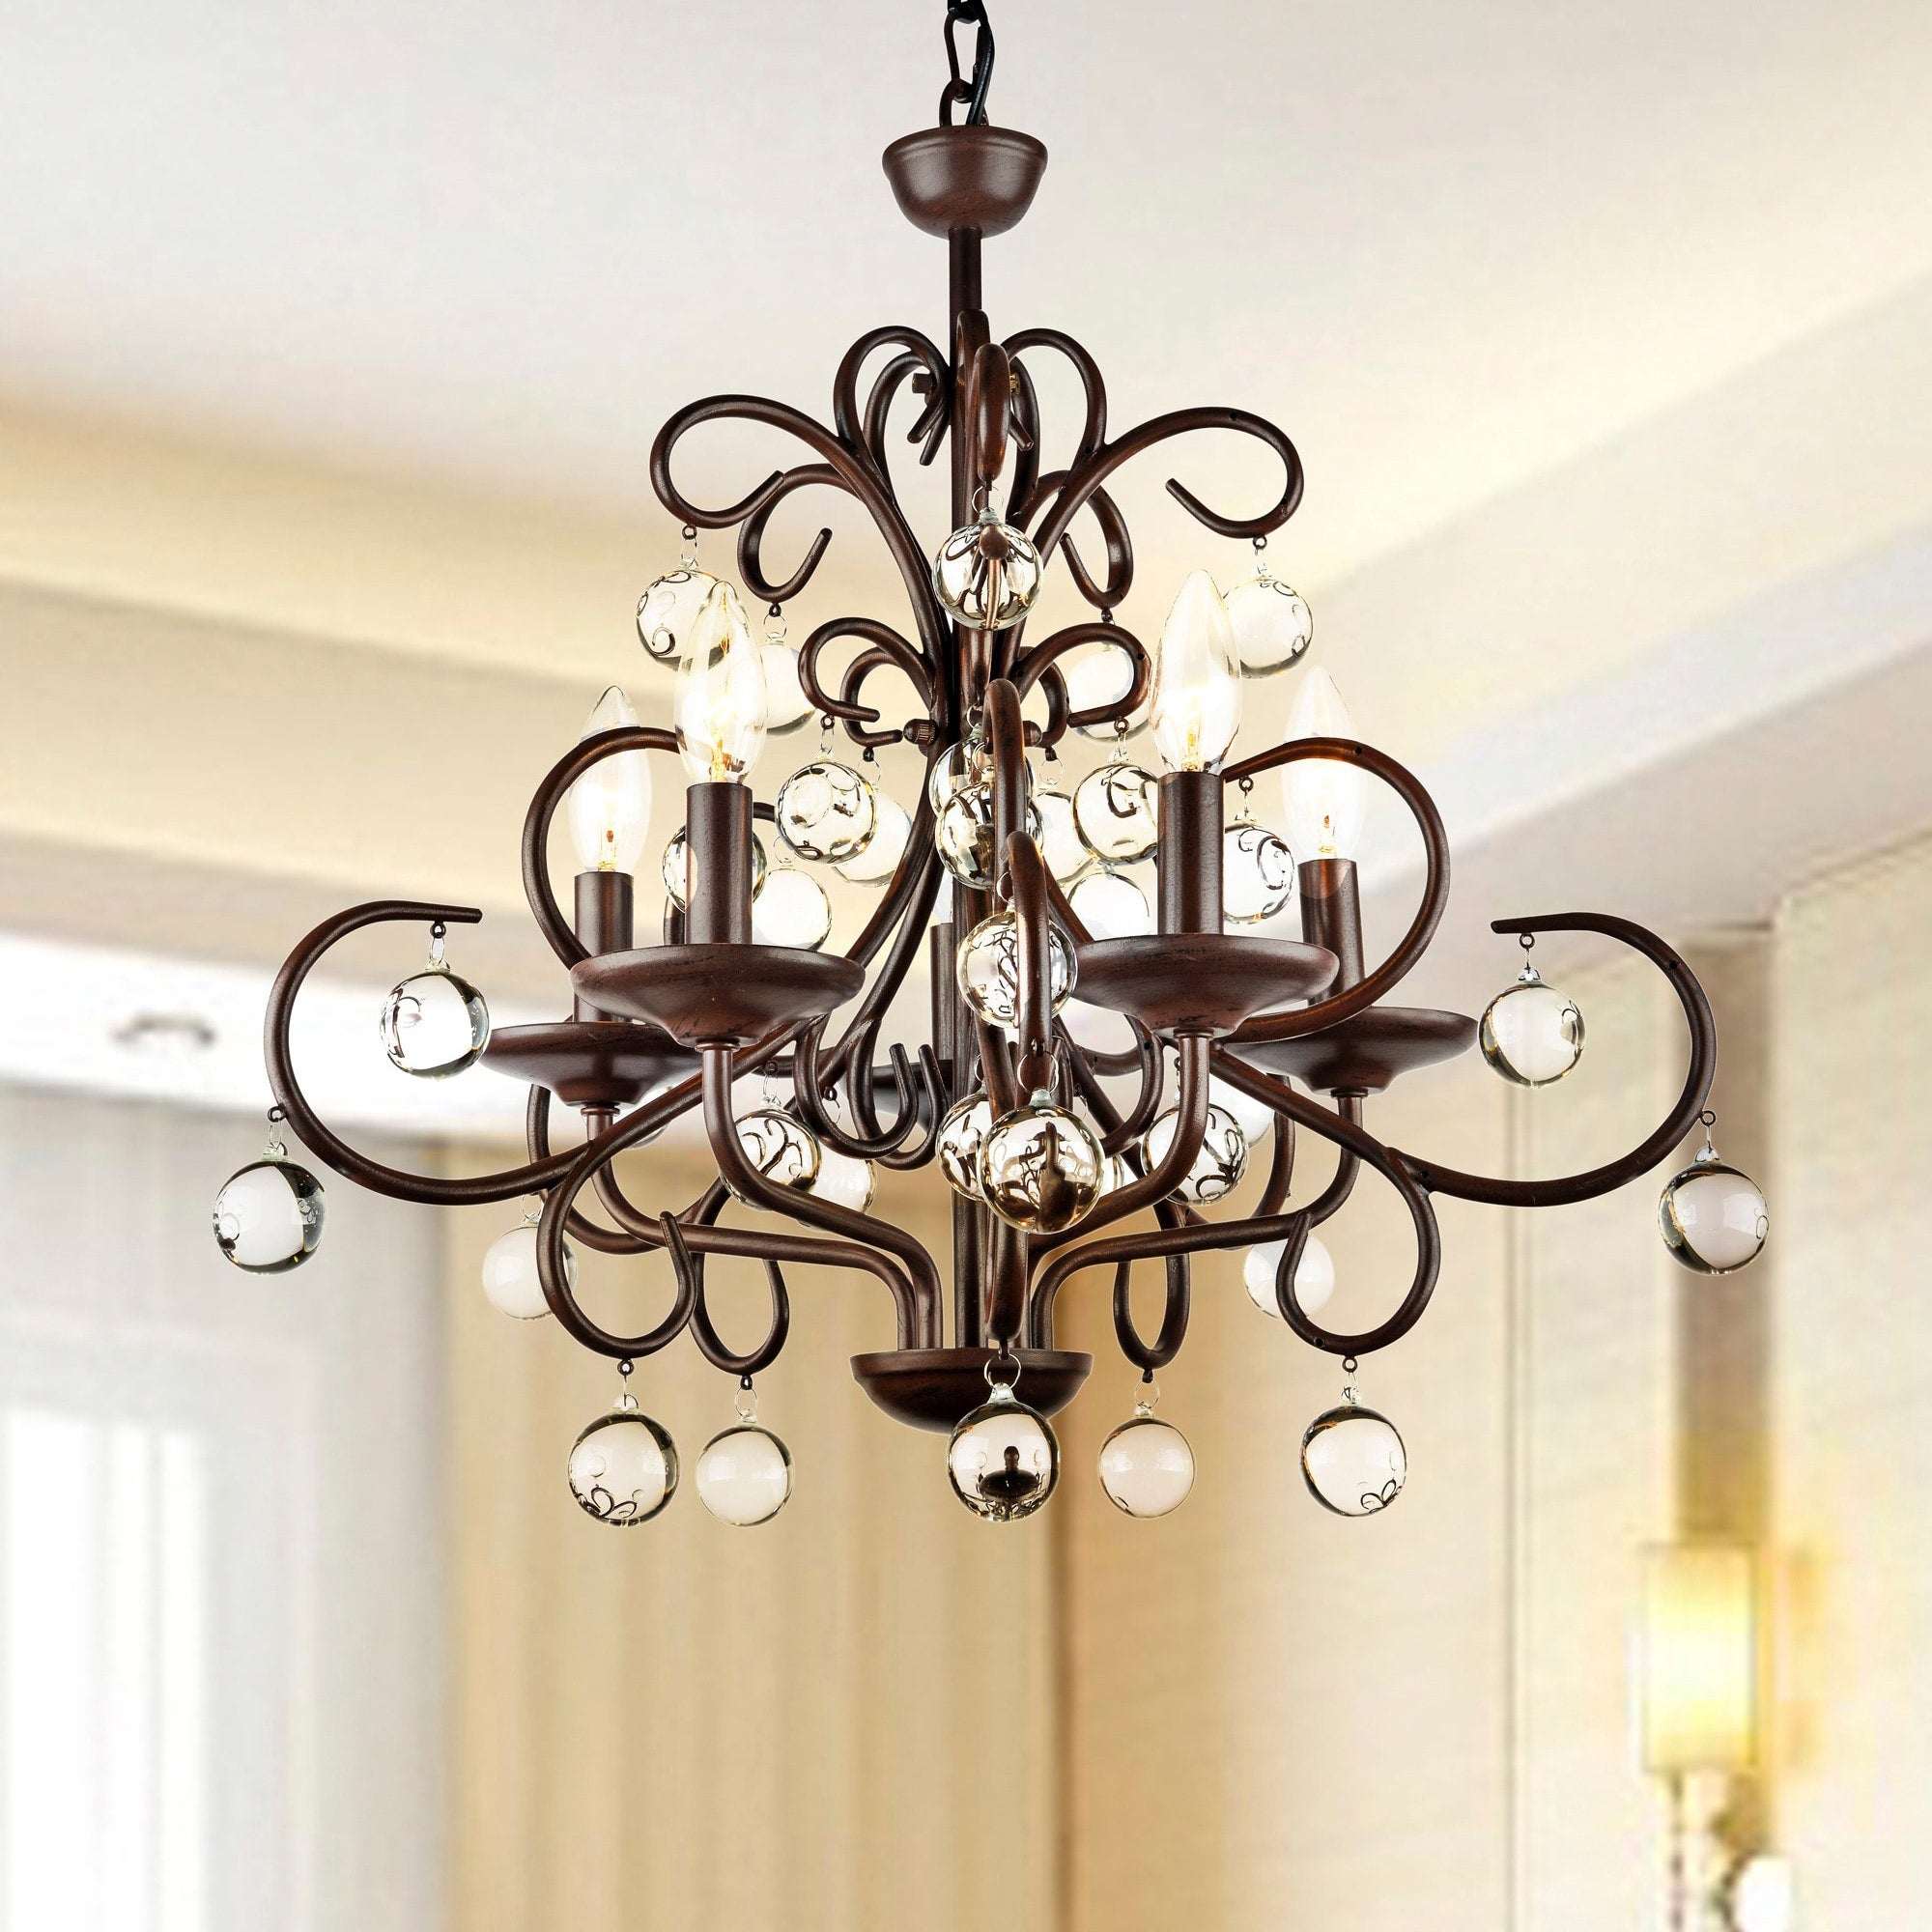 Wrought Iron and Crystal Five-Light Chandelier